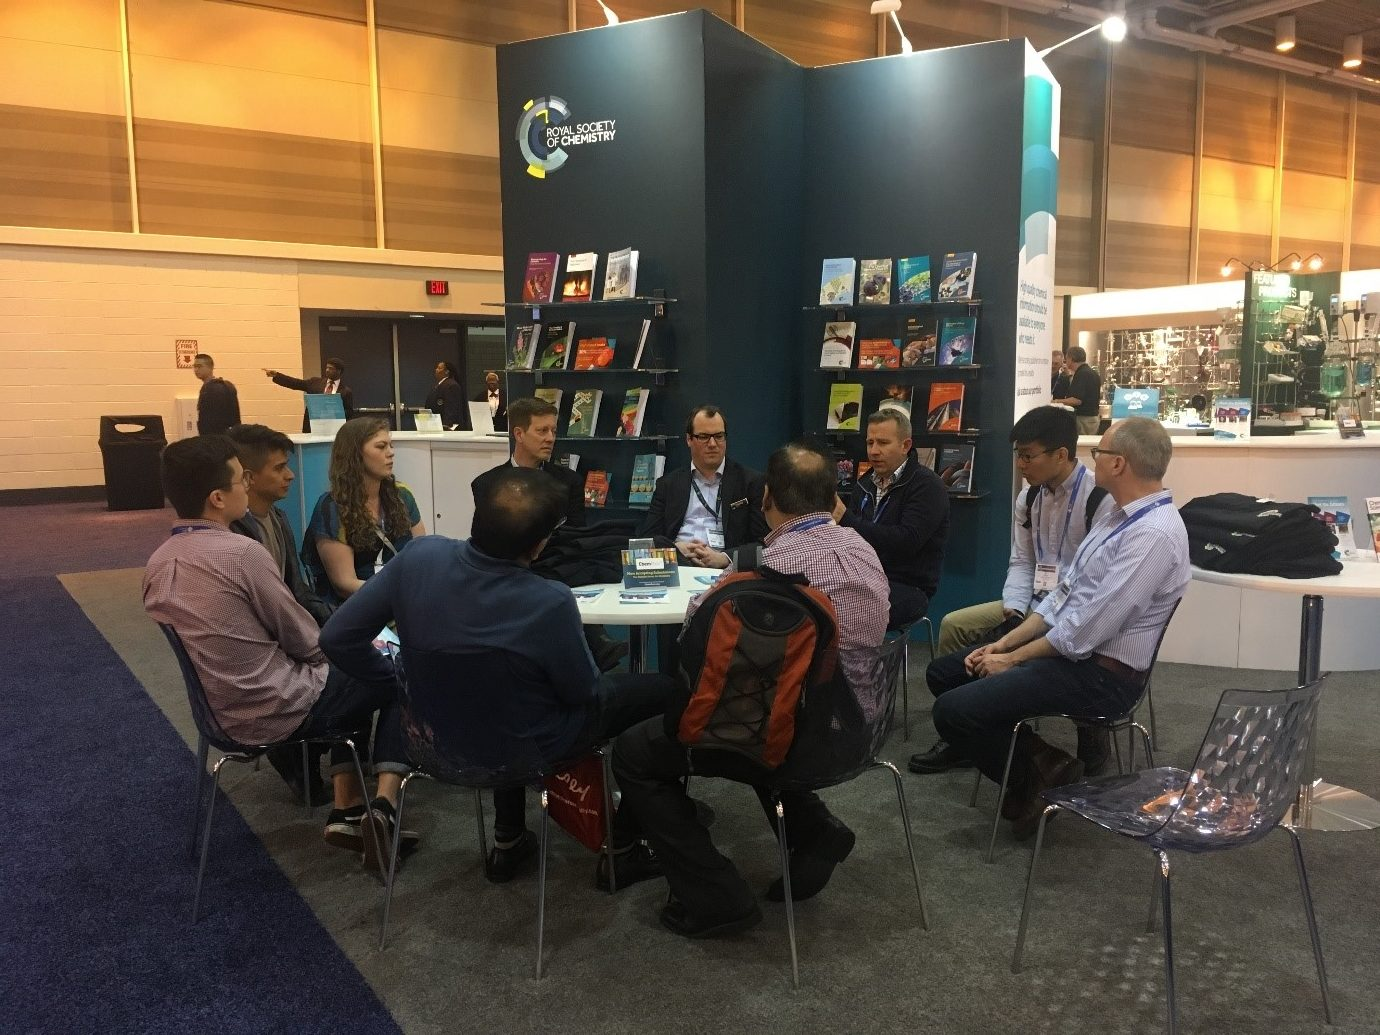 RSC, ACS, Environmental Science: Nano, Environmental Science: Processes & Impacts, Environmental Science: Water Research & Technology, ESN, ESW, ESPI, Meet the Editor, Booth, Sam Keltie, New Orleans